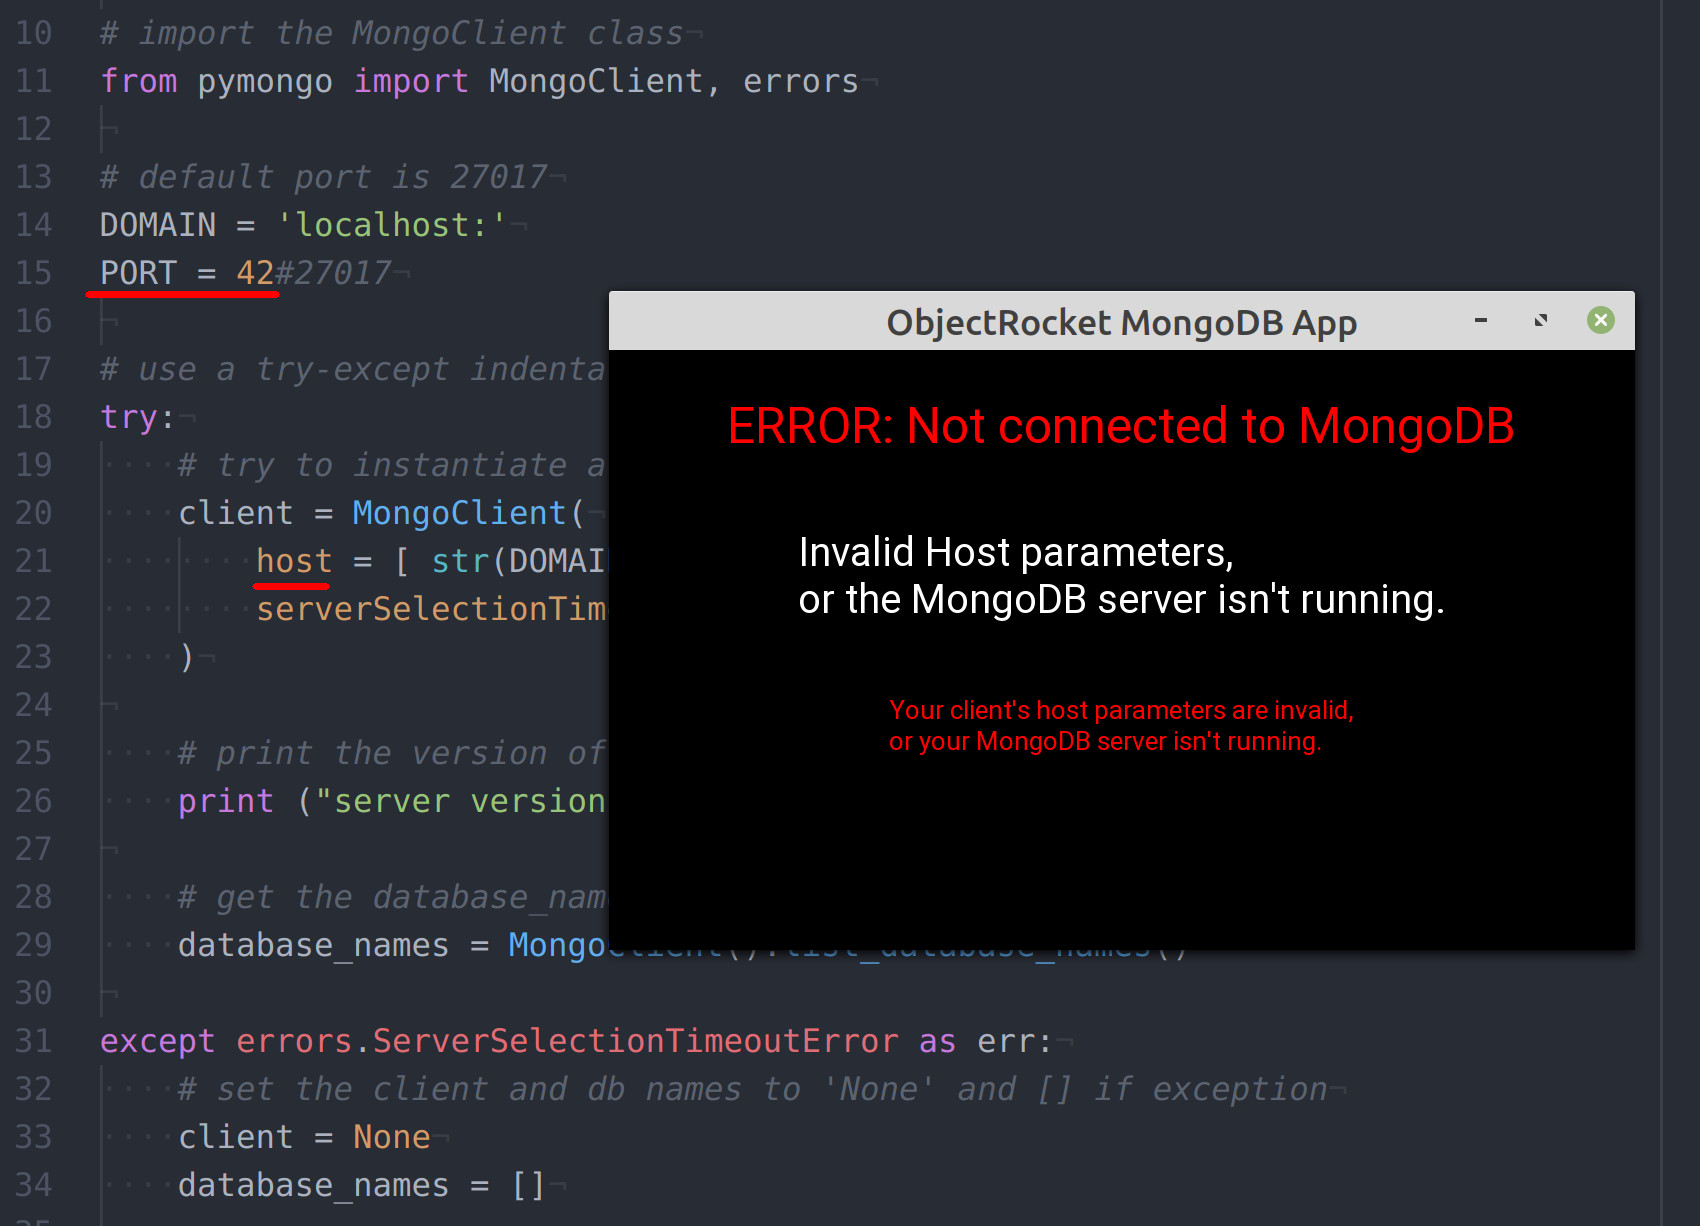 Build A MongoDB GUI App Using Kivy And Python (Part 1